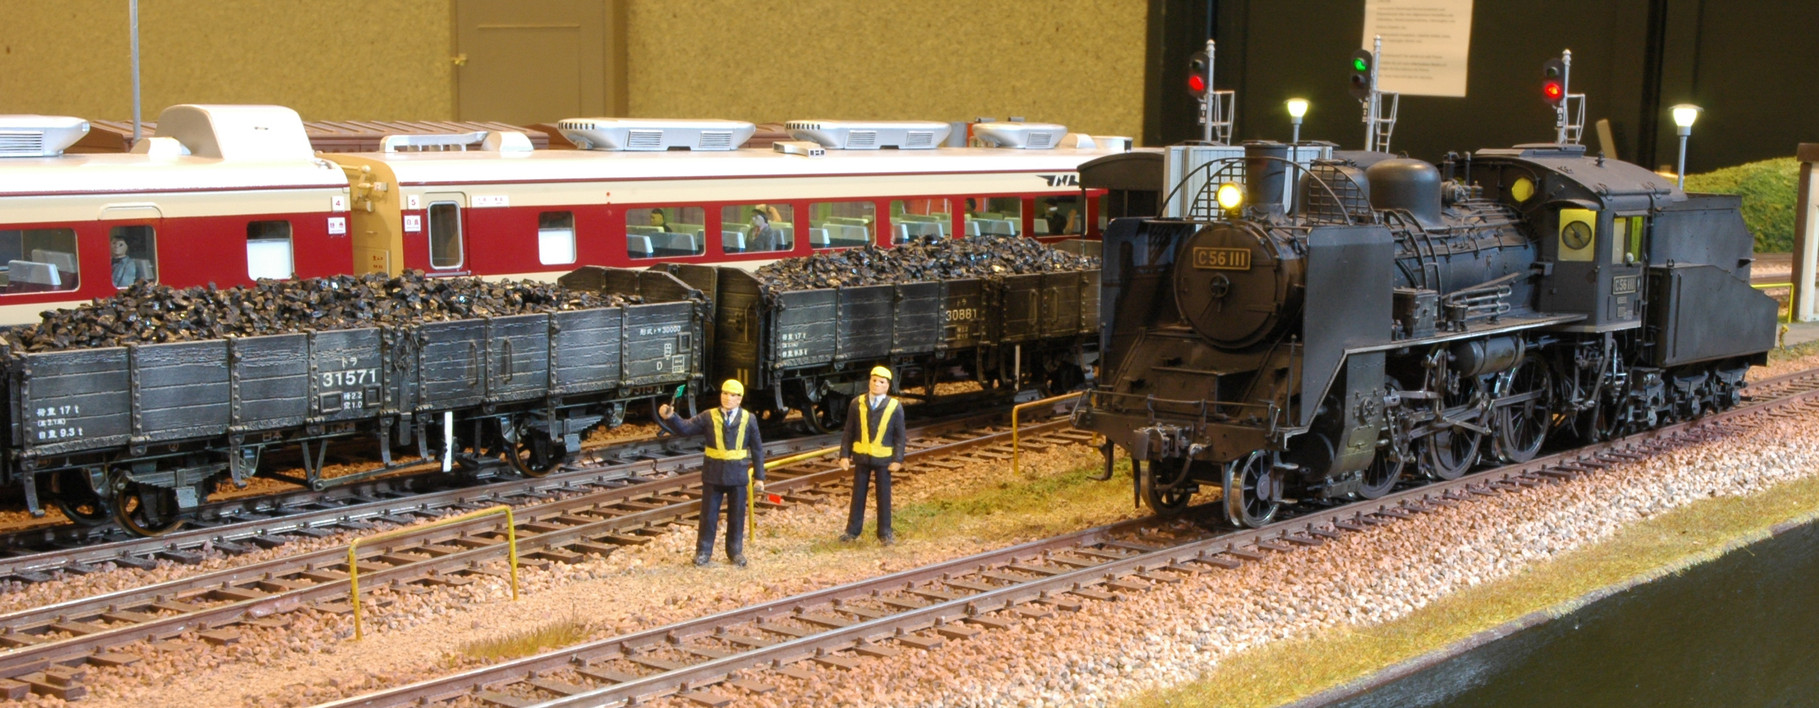 Shunters next to C56